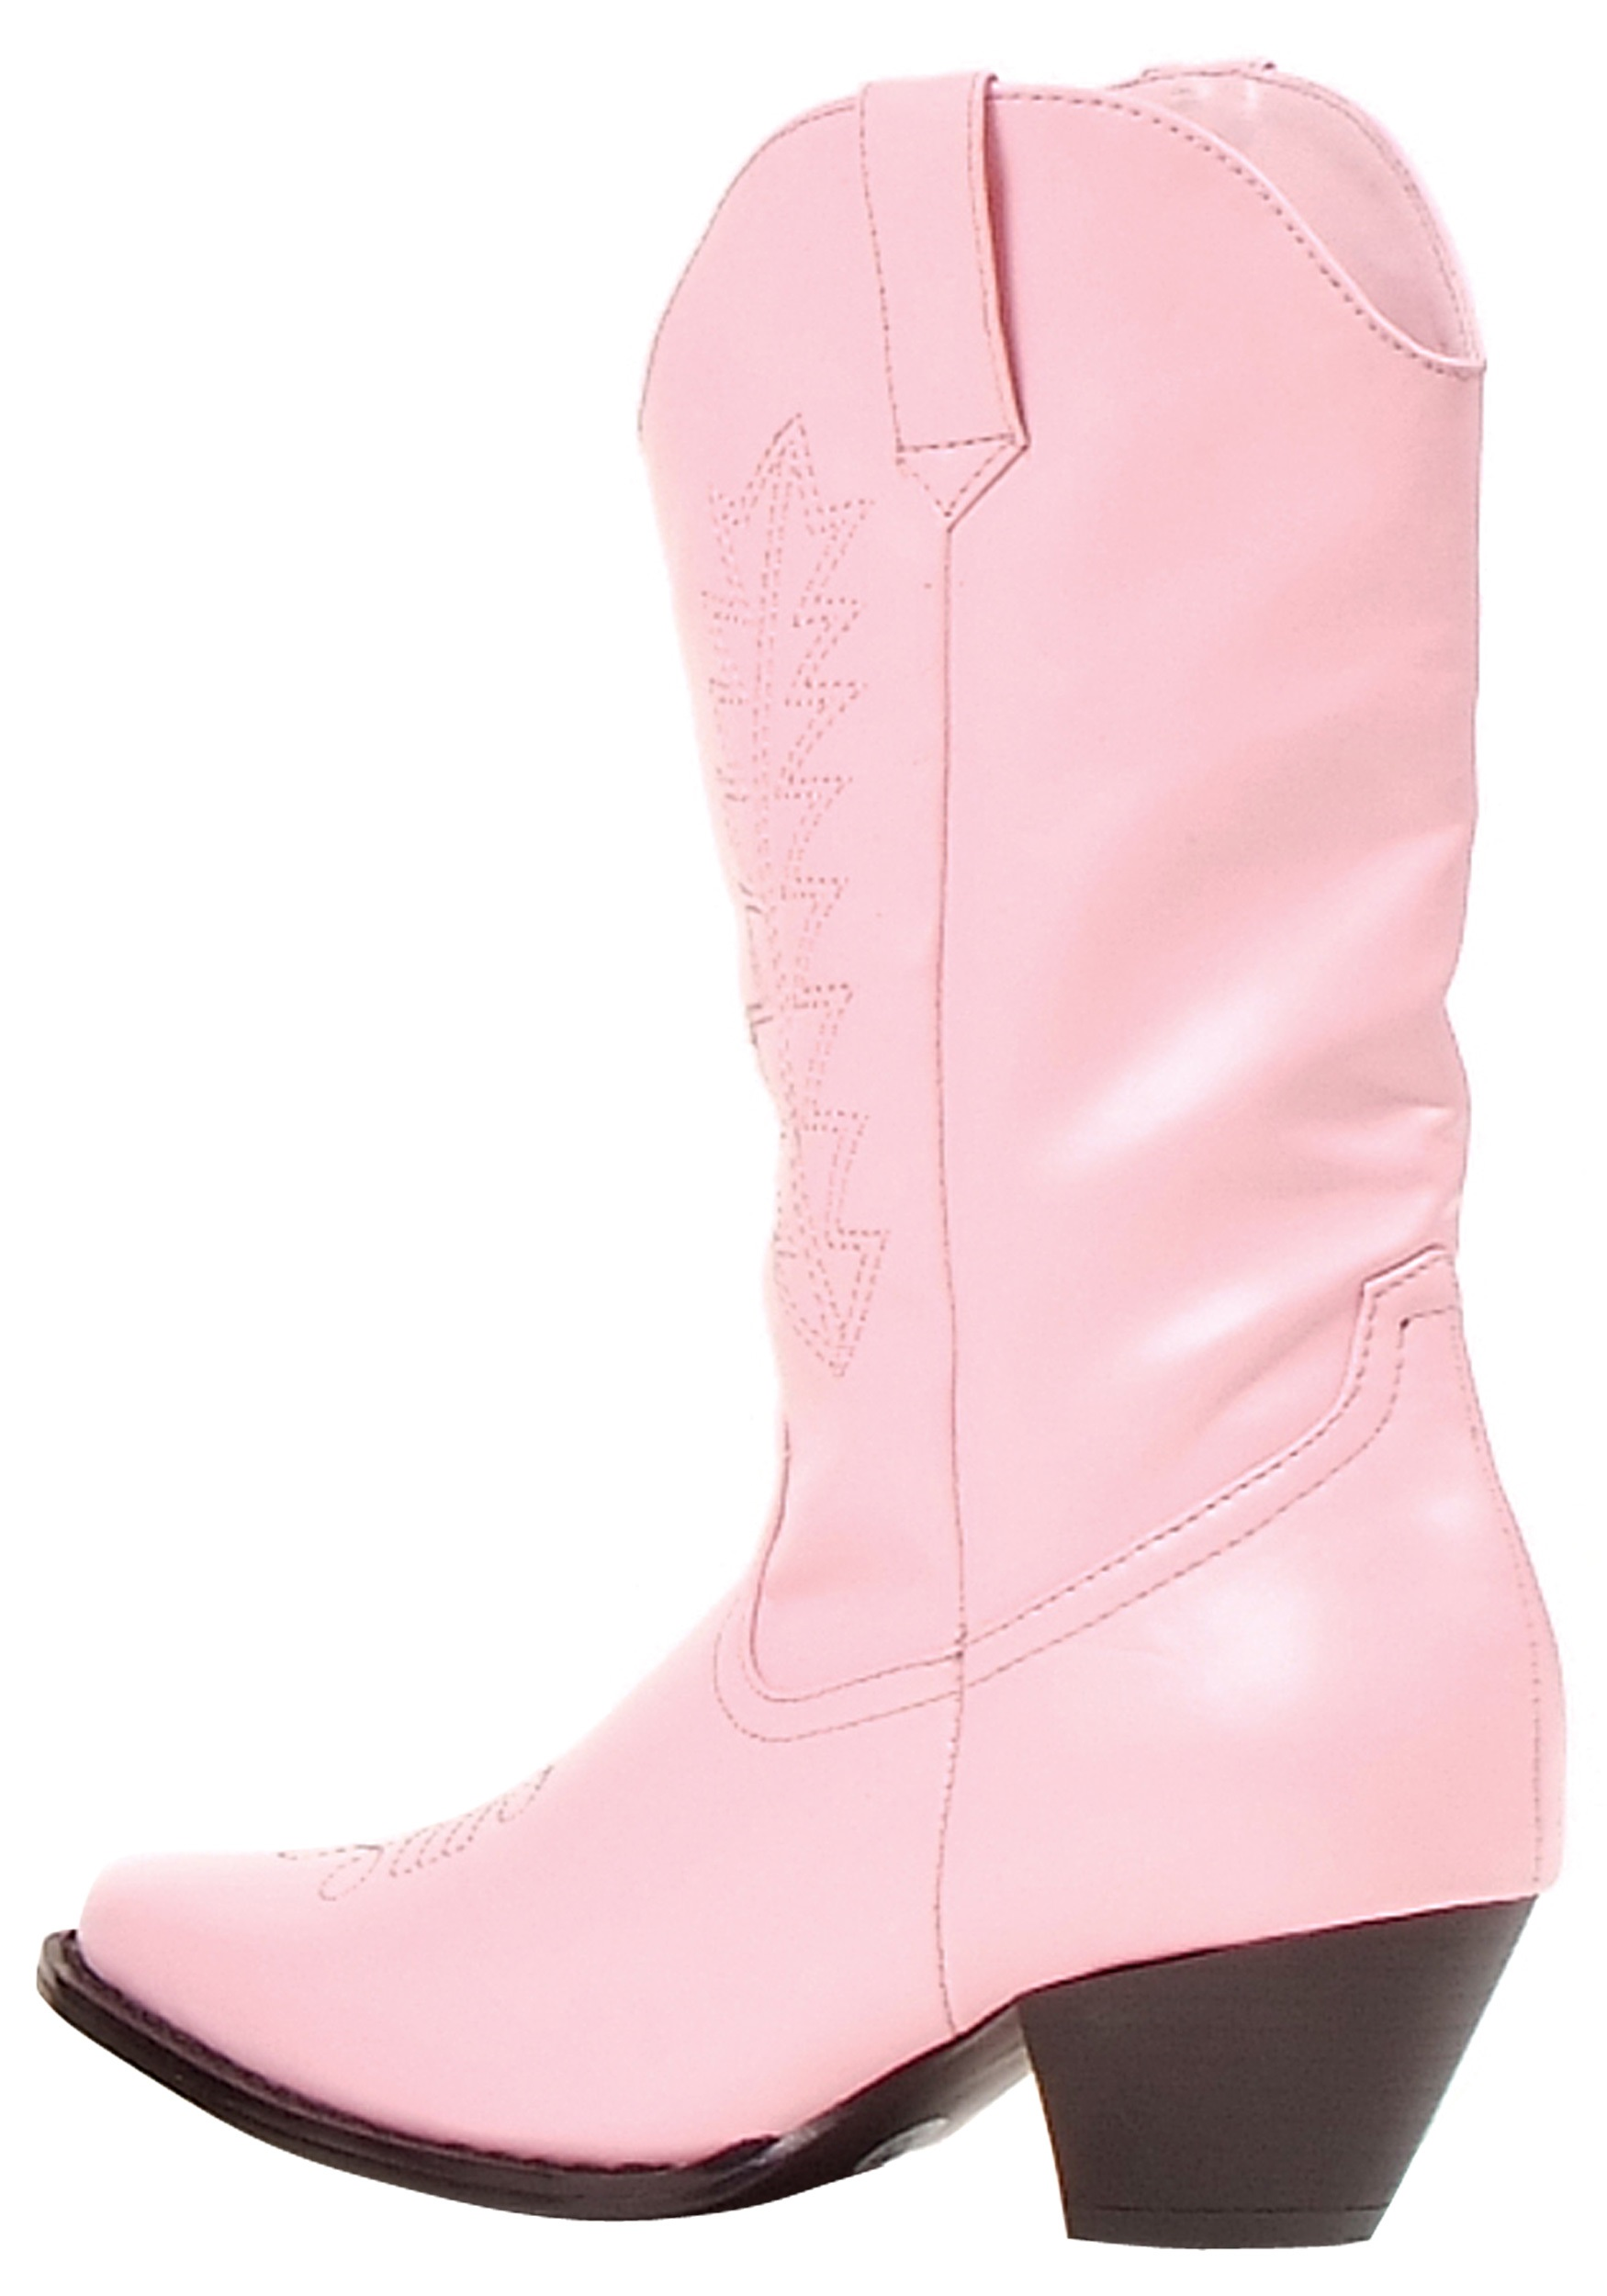 Pink Cowboy Boots For Girl Pink Girls Cowboy Boots